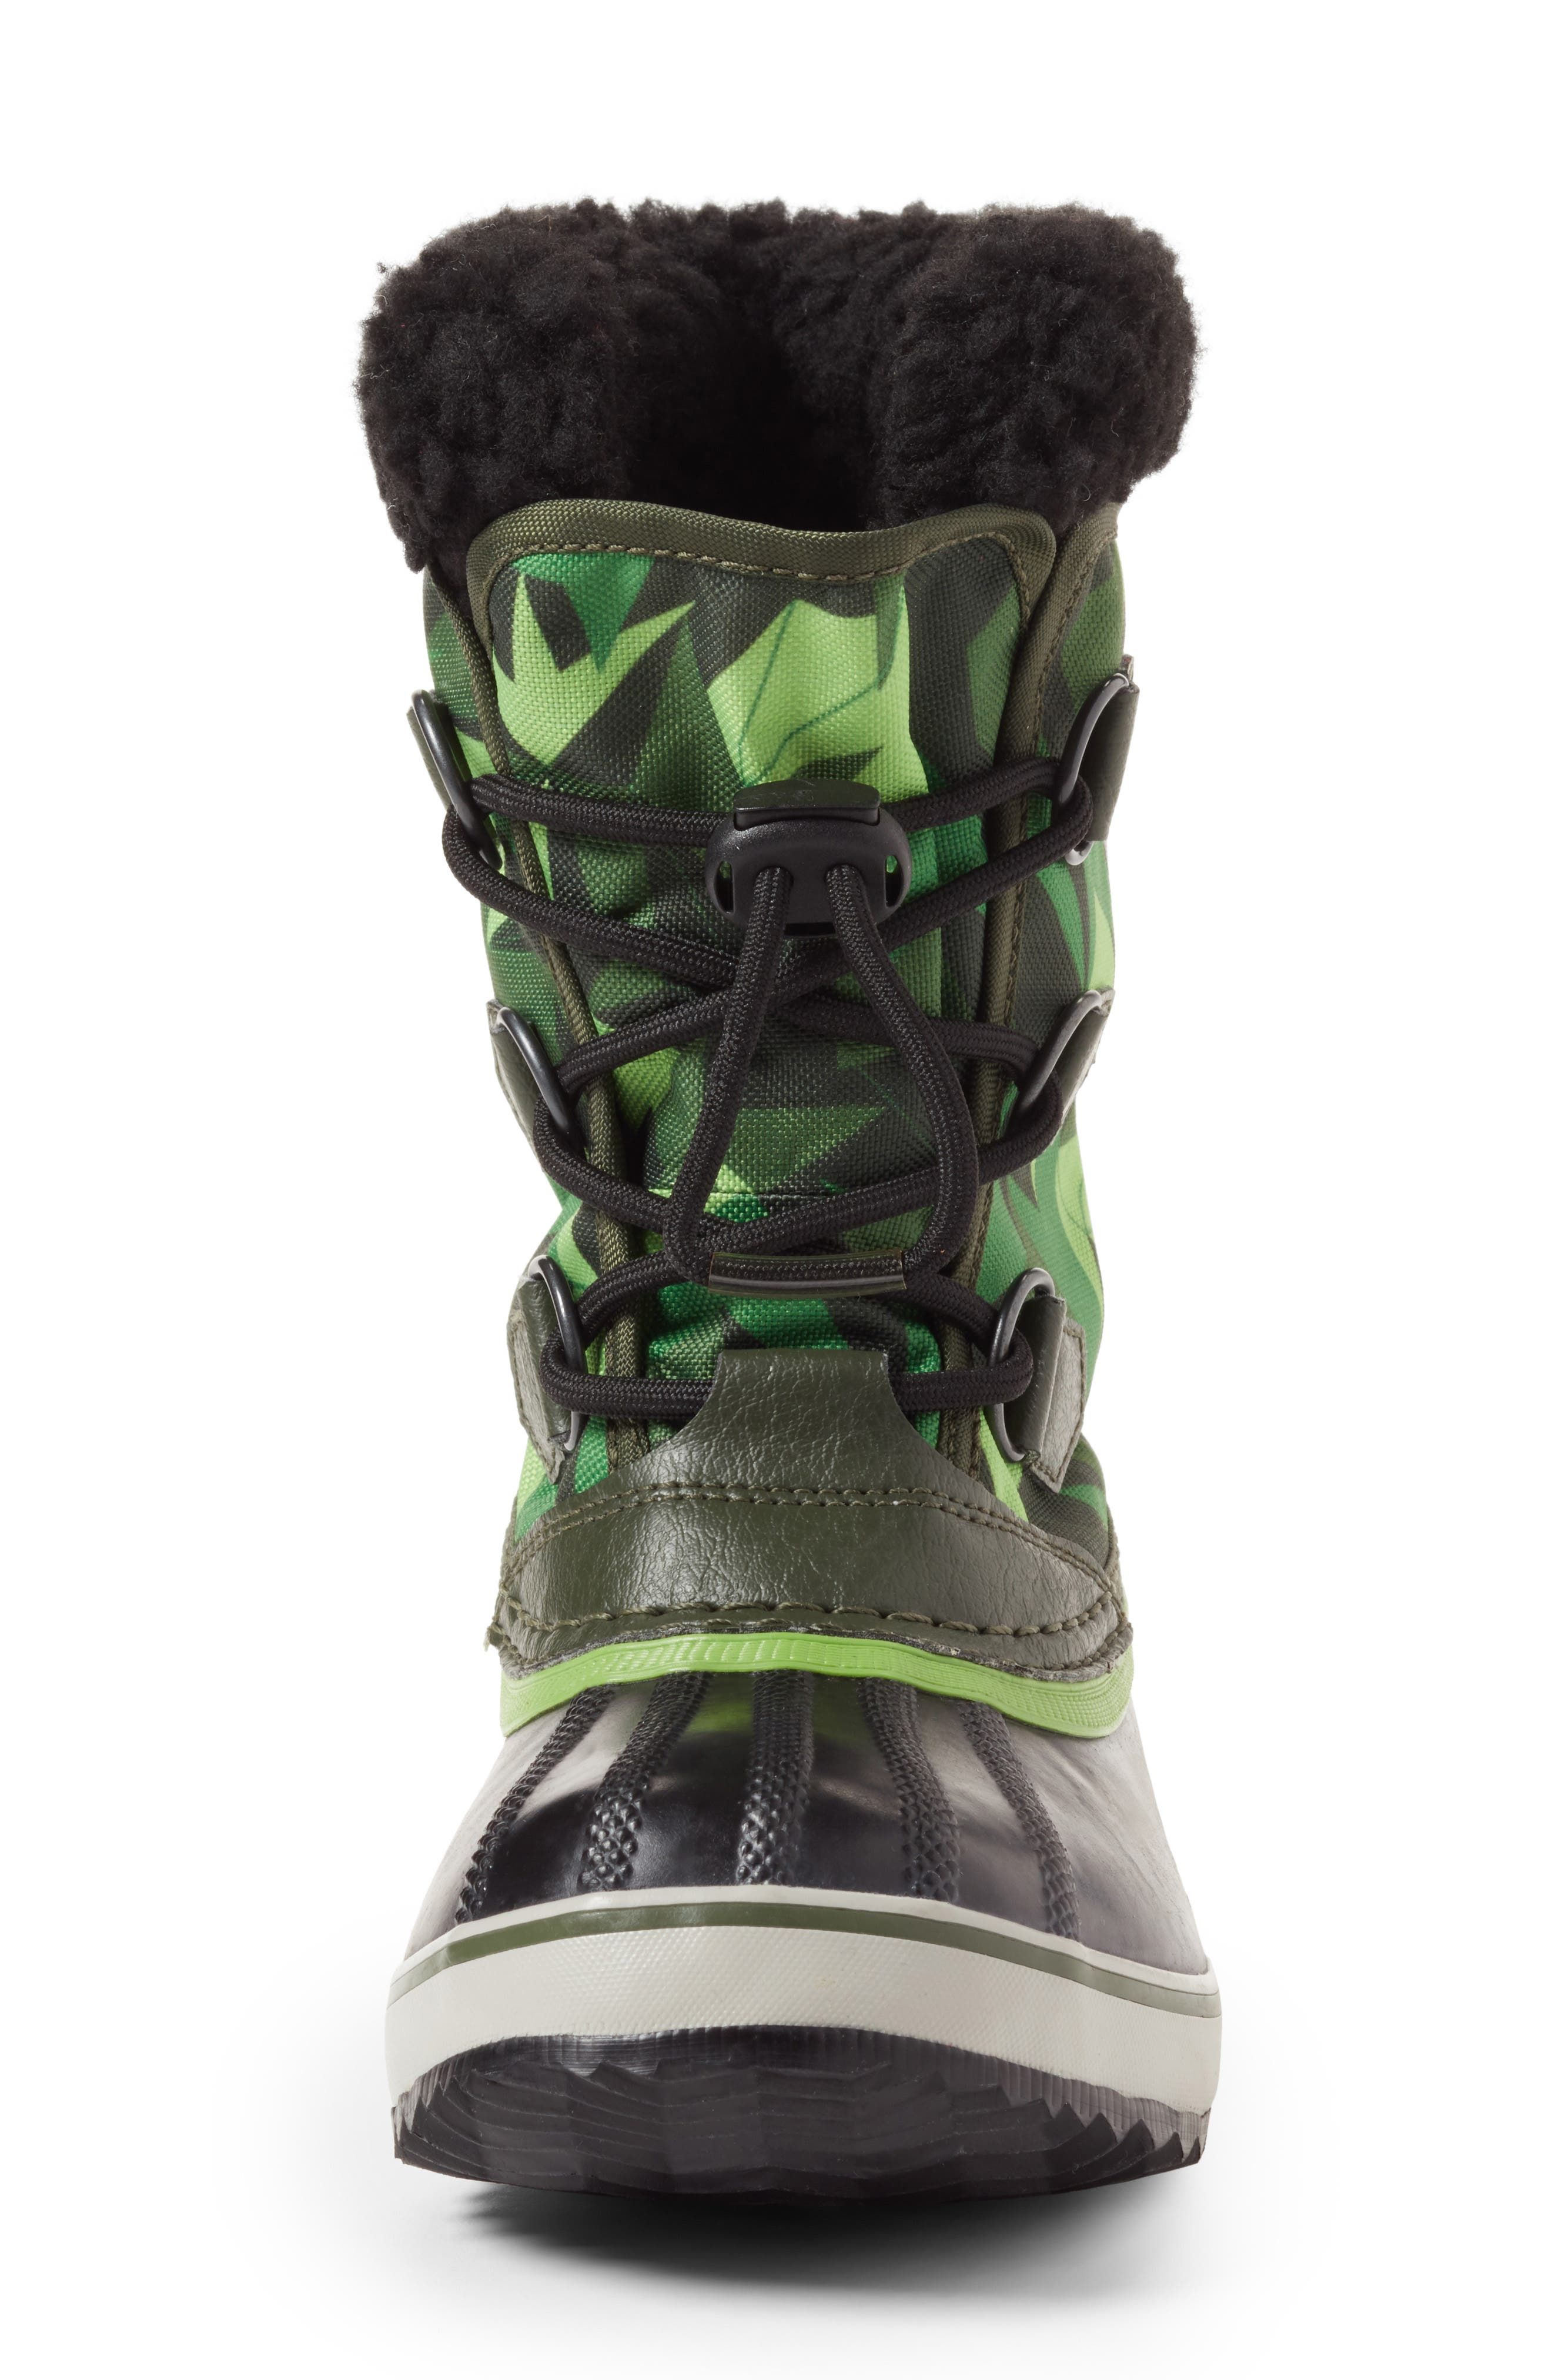 Yoot Pac Waterproof Insulated Snow Boot,                             Alternate thumbnail 4, color,                             347